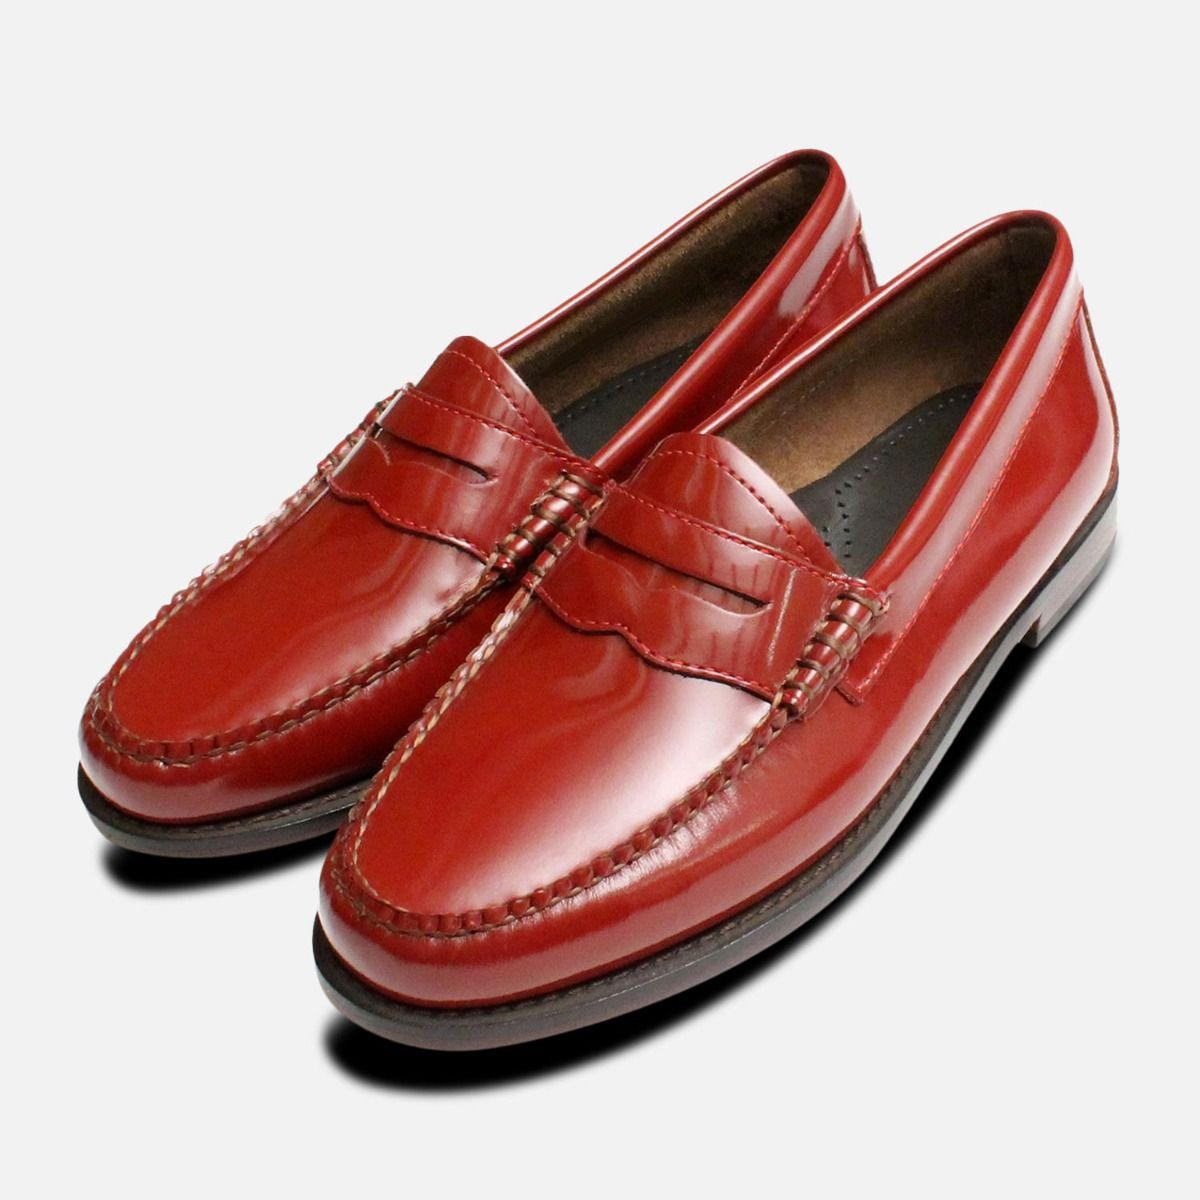 Cardinal Red Patent Bass Loafer Ladies